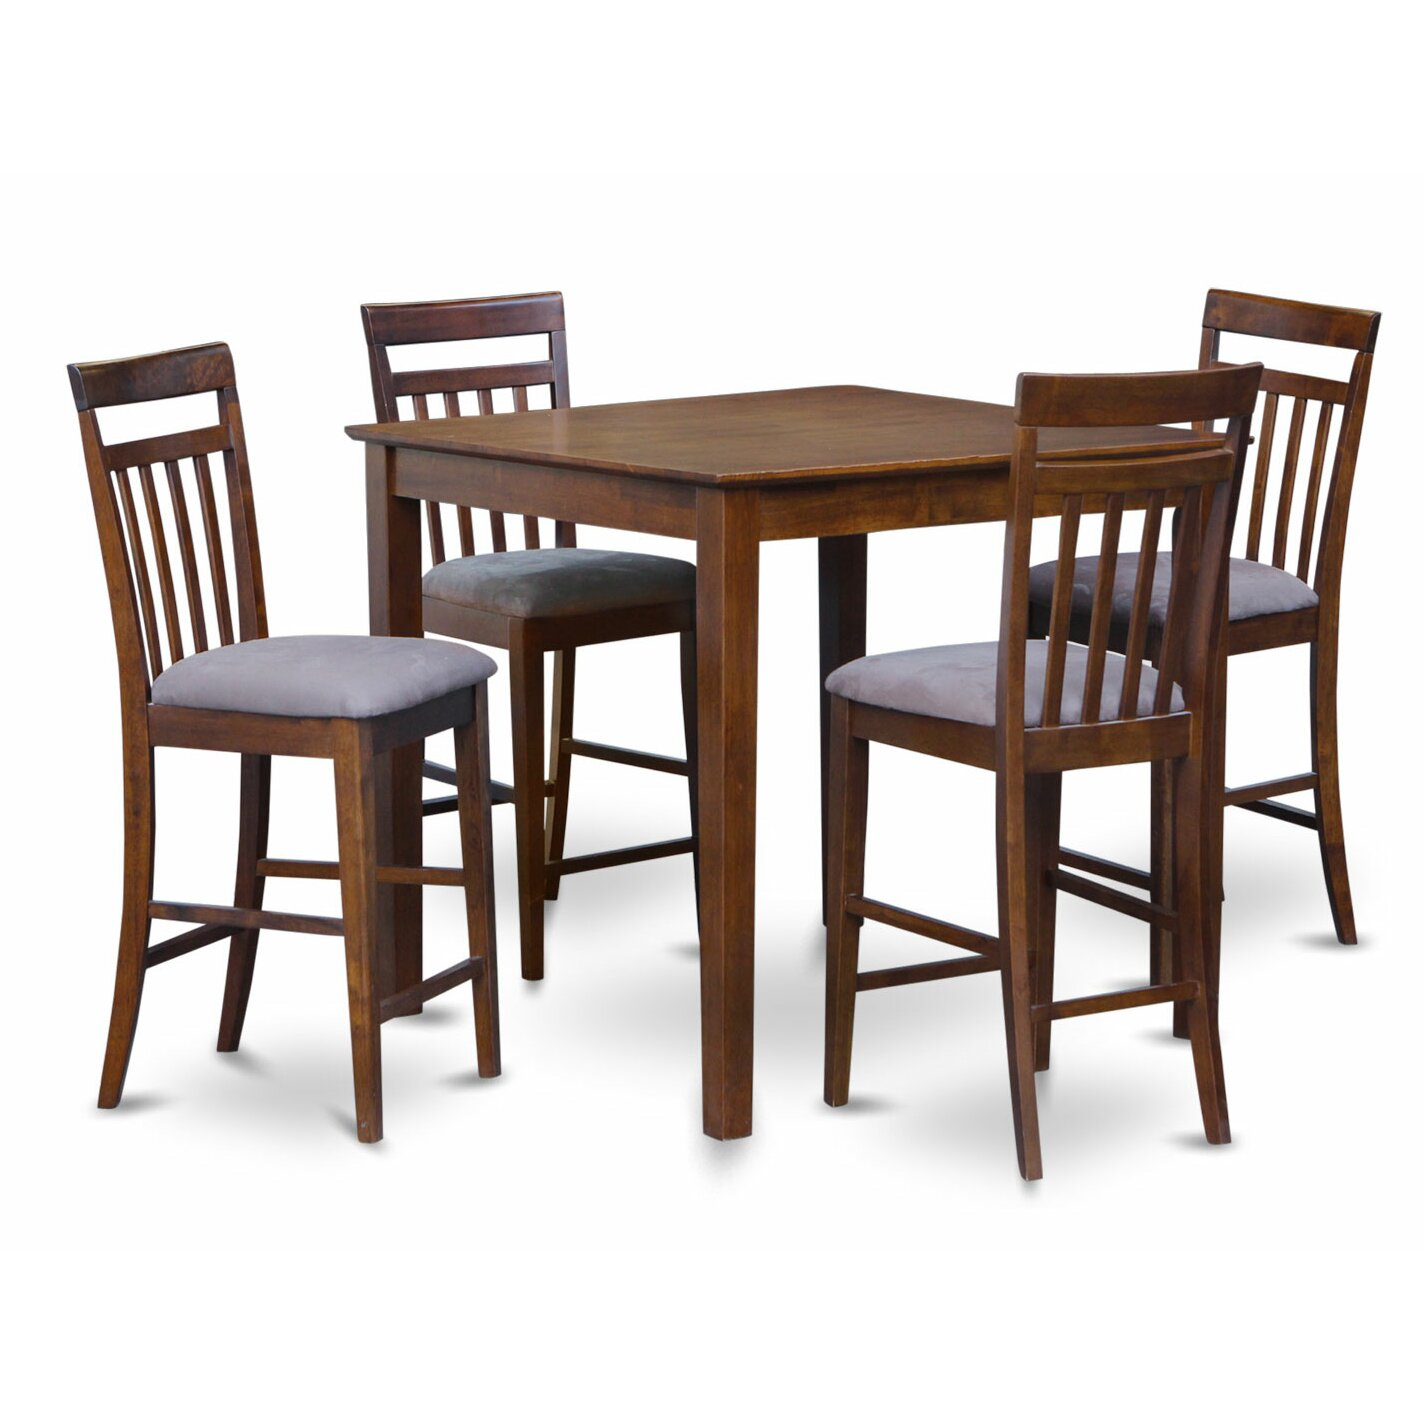 East West 5 Piece Counter Height Pub Table Set